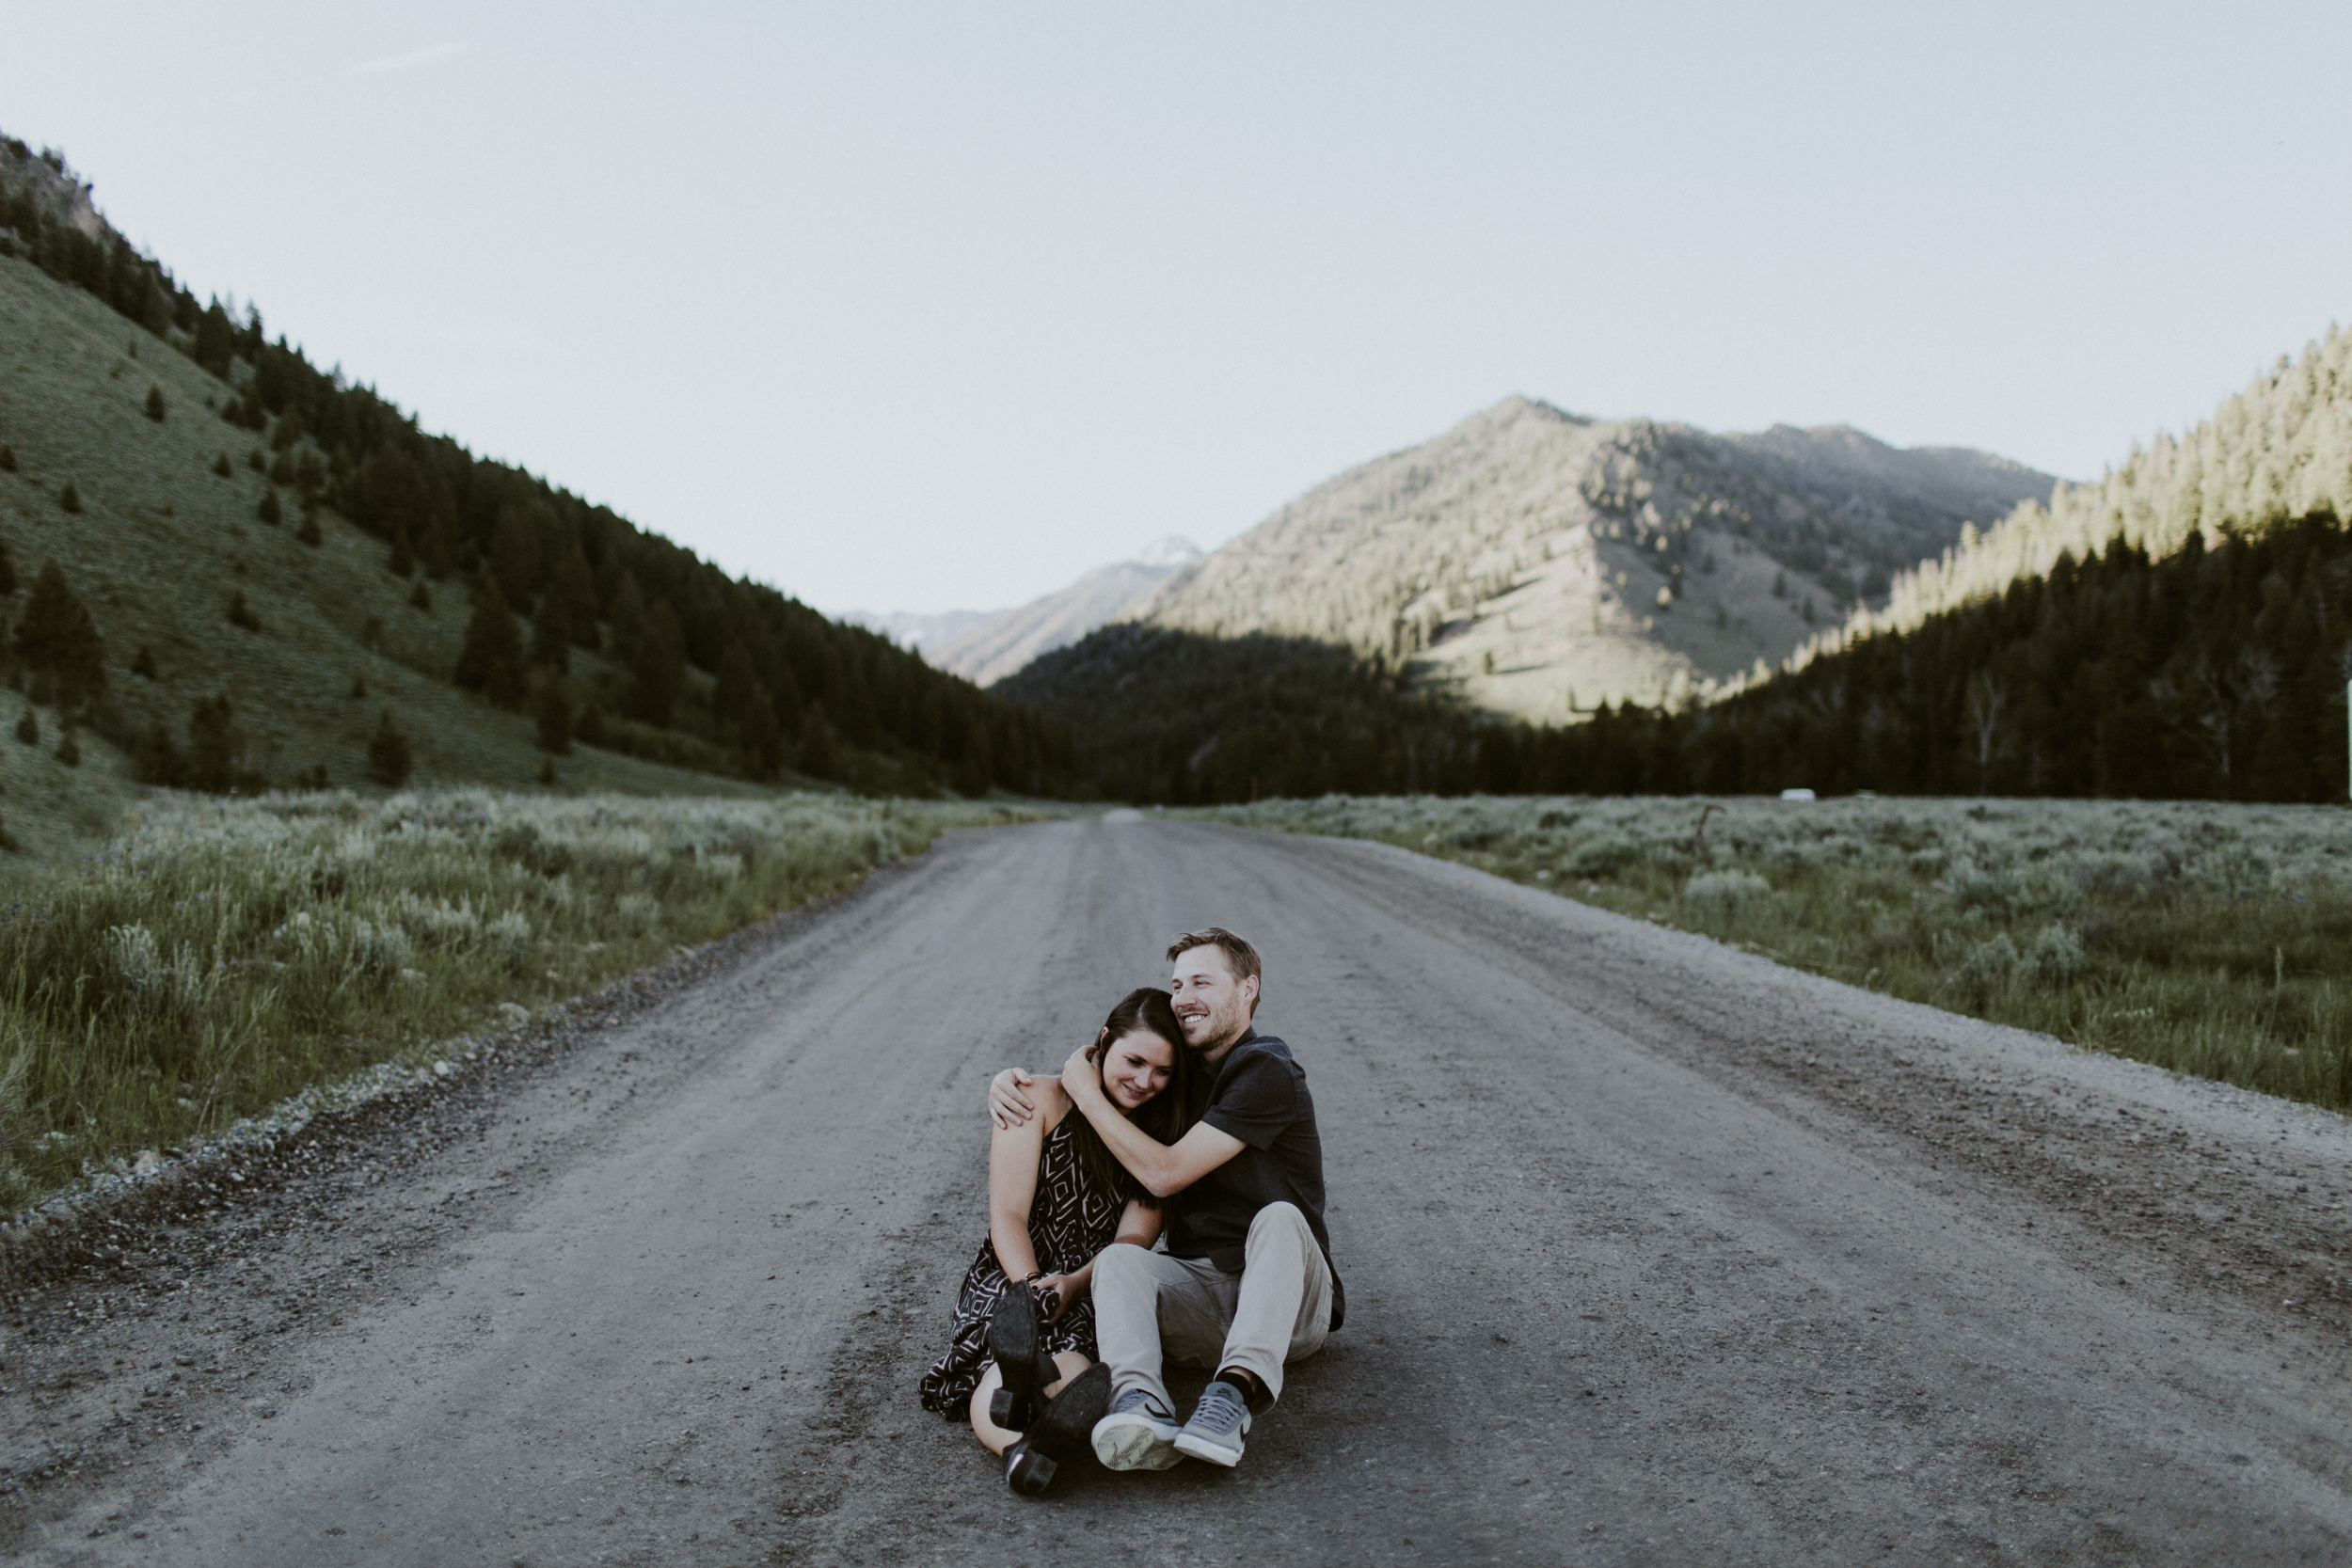 sun_valley_engagement_christinemariephoto-12.jpg